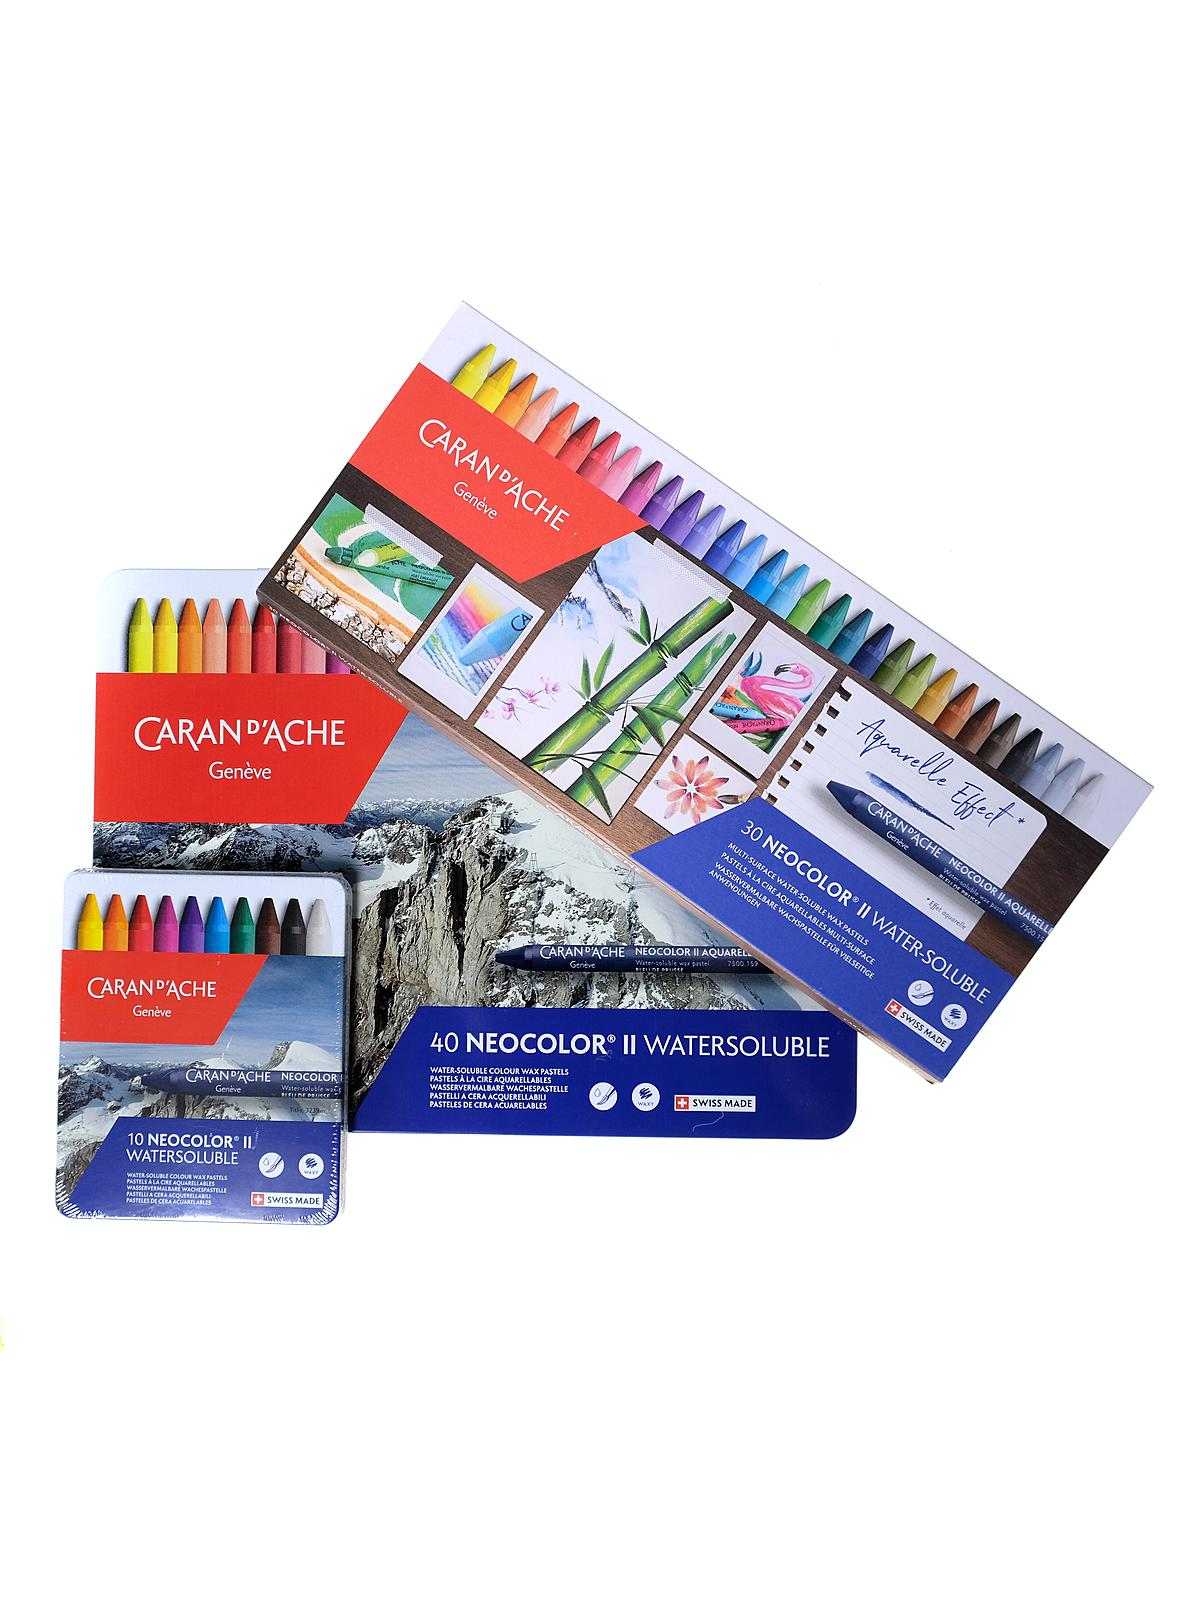 Neocolor II Aquarelle Water Soluble Wax Pastel Sets